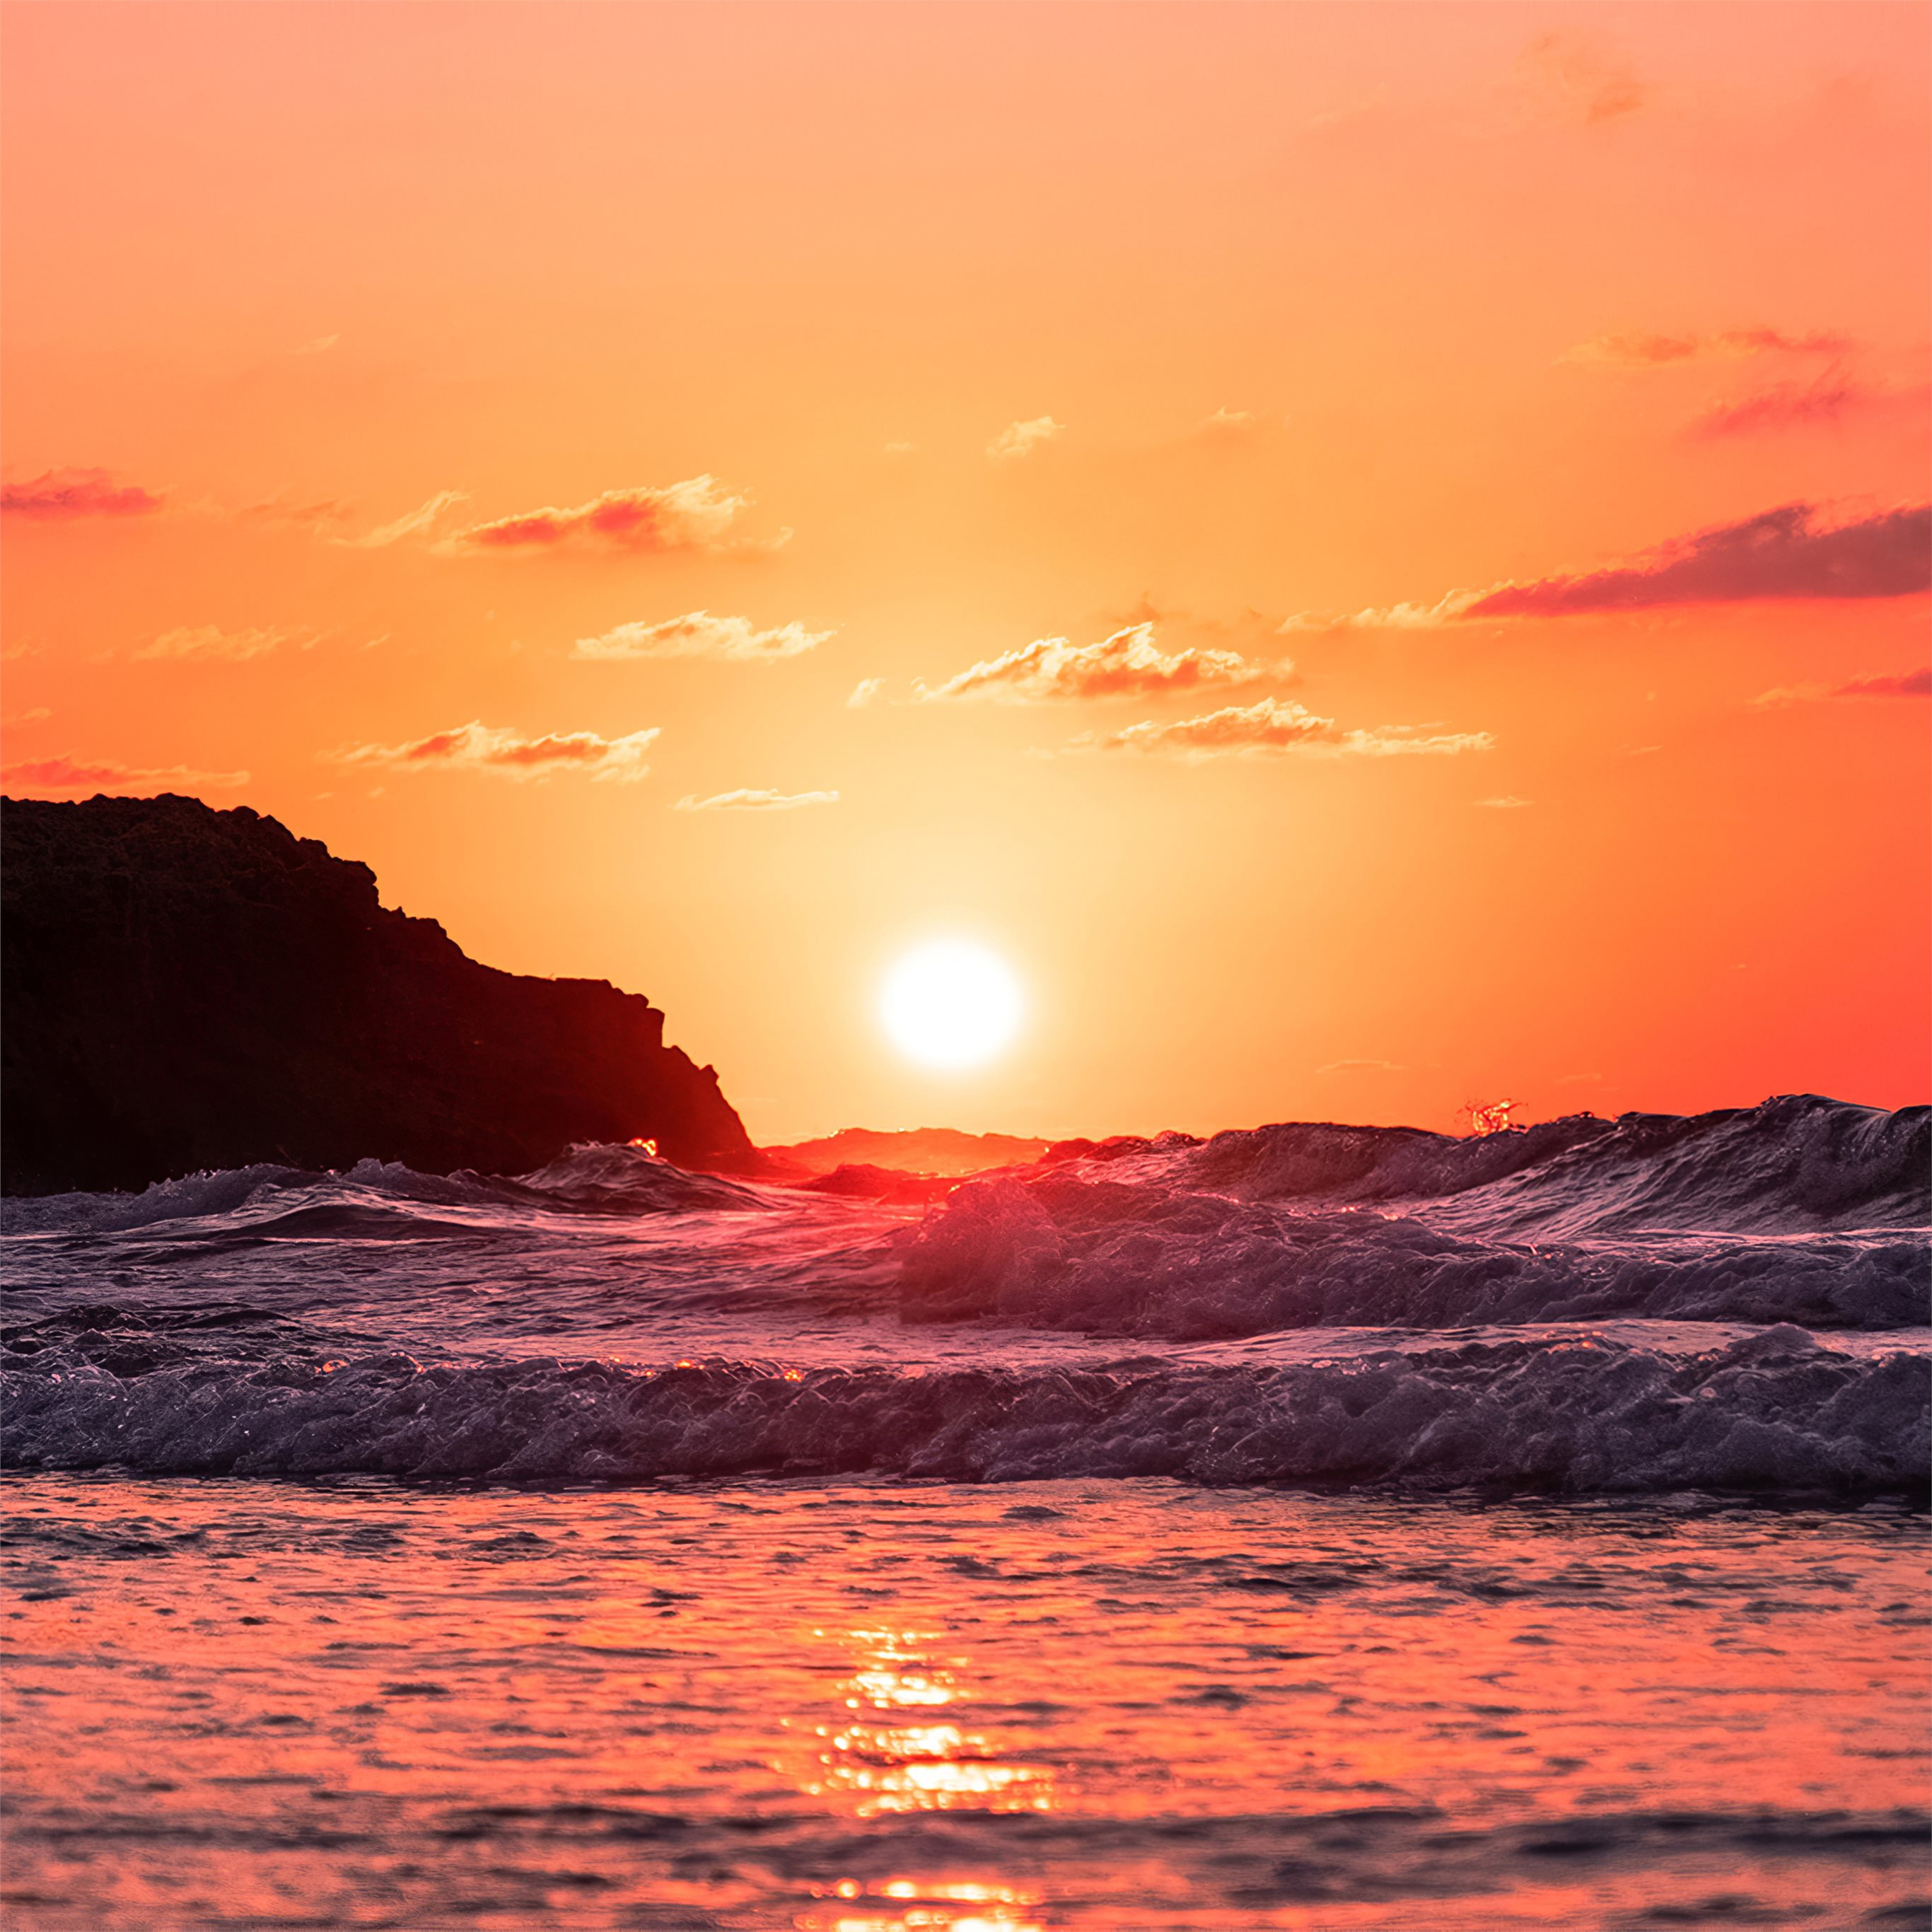 Waves Ocean Sunset 4k Ipad Air Wallpapers Free Download Free for commercial use no attribution required high quality images. waves ocean sunset 4k ipad air